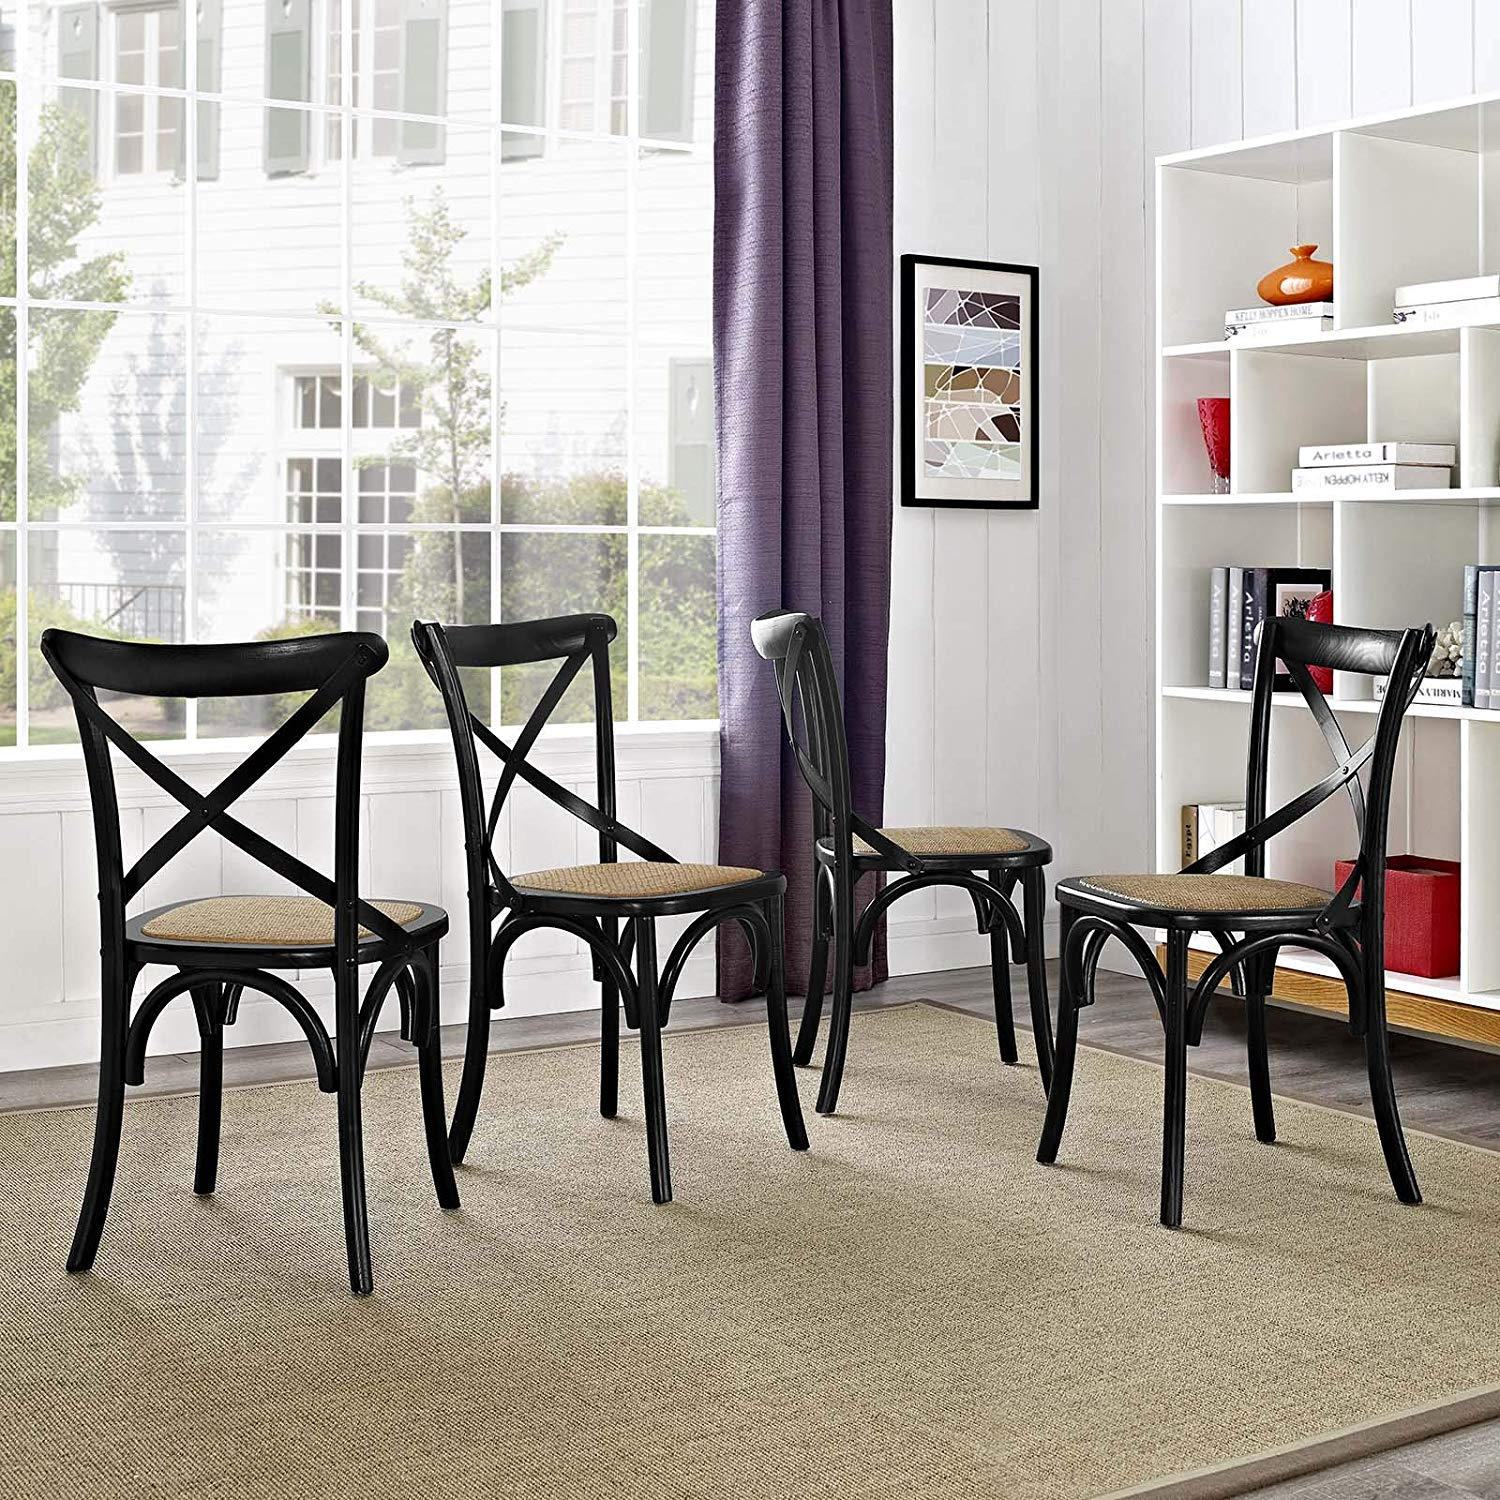 Dining Chairs For The Farmhouse Style Jordan Furniture